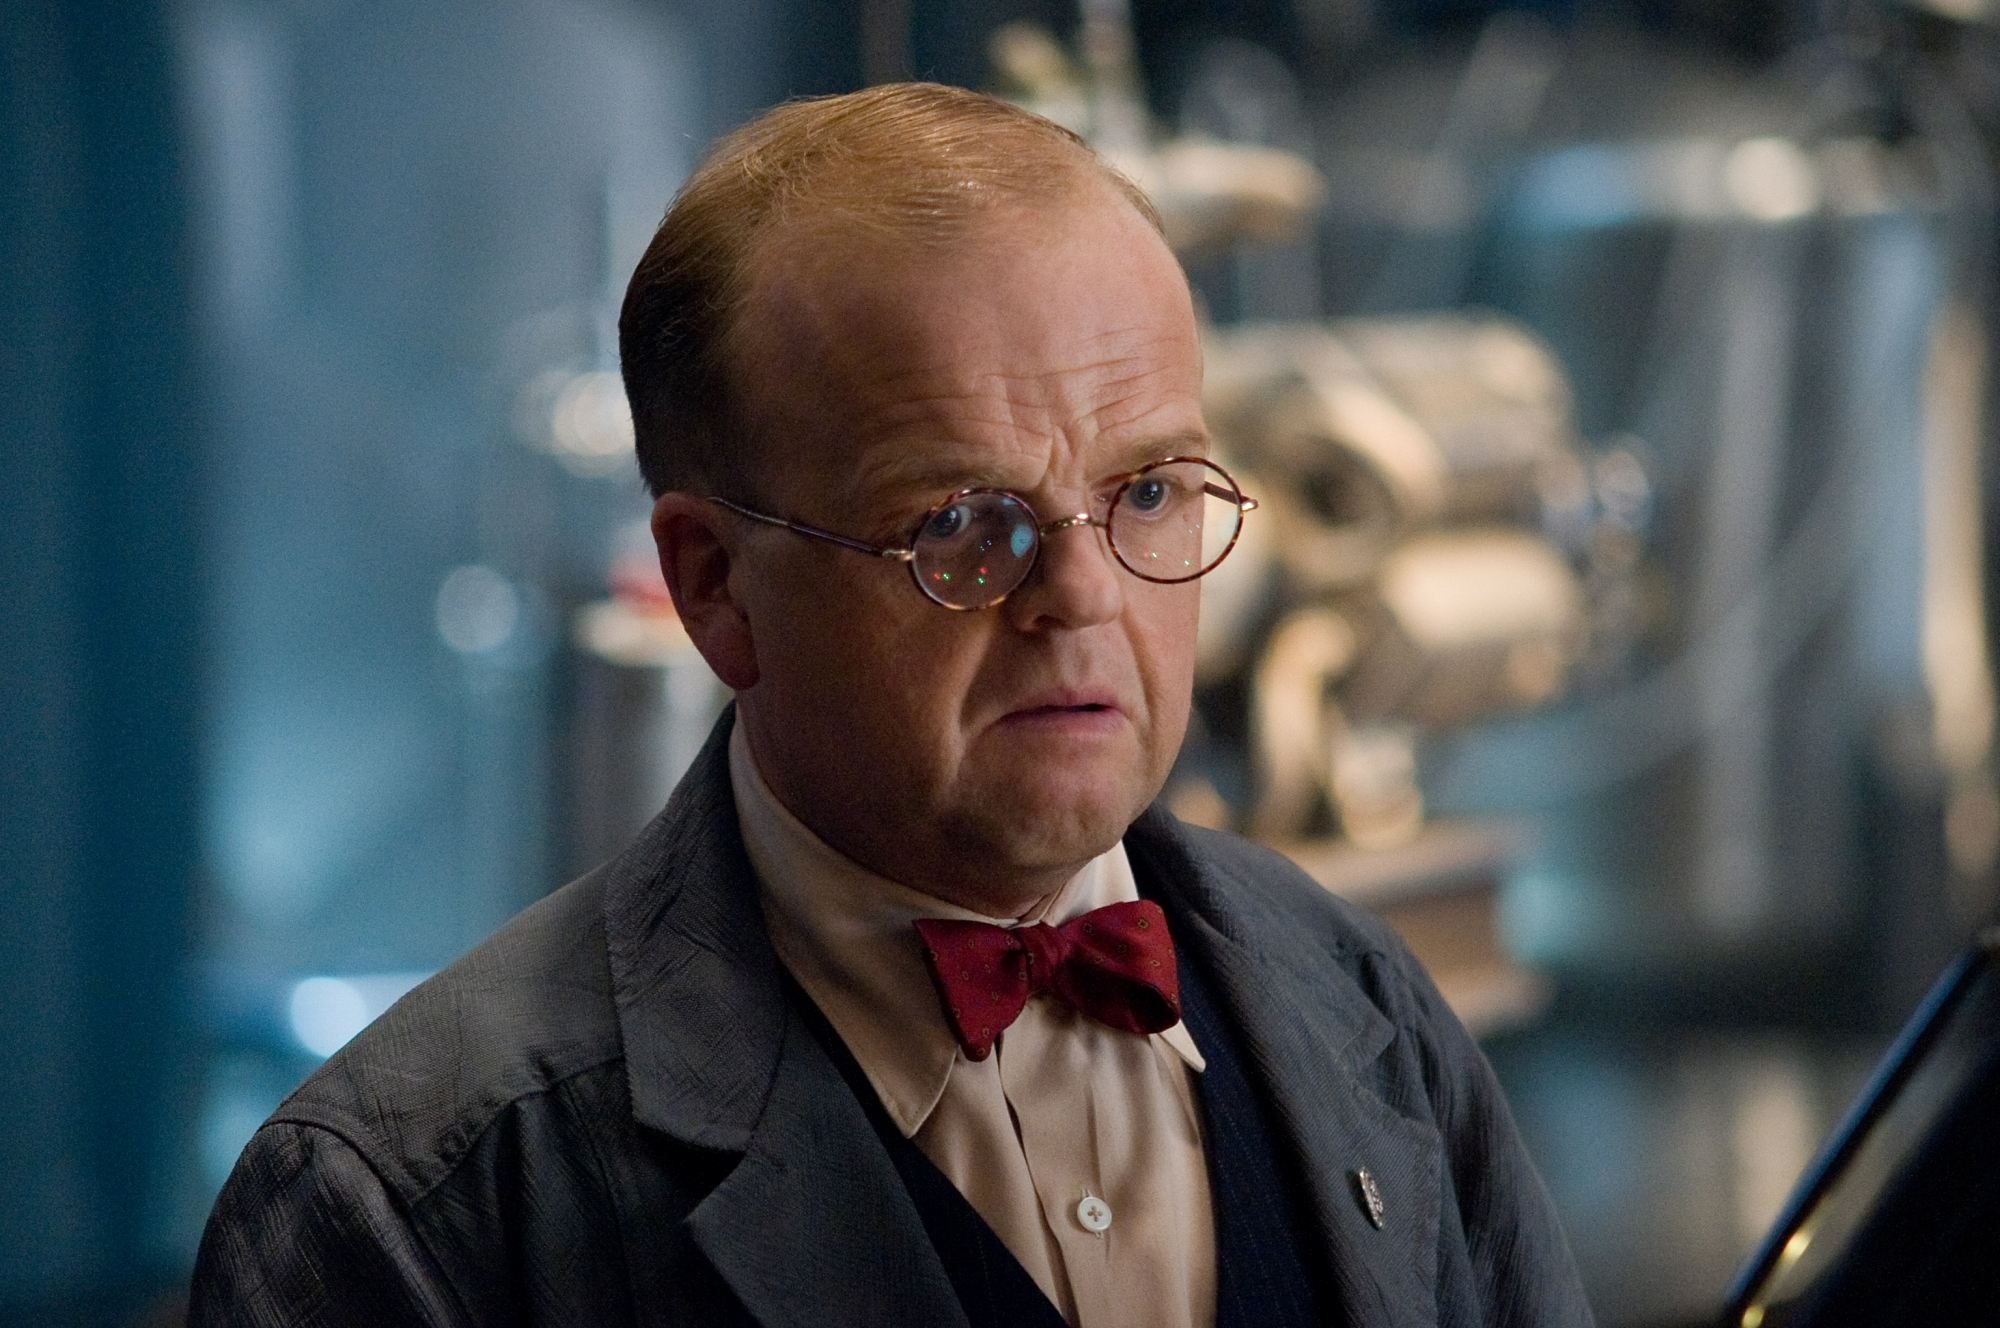 File:Toby-jones-as-arnim-zola-in-captain-america.jpg